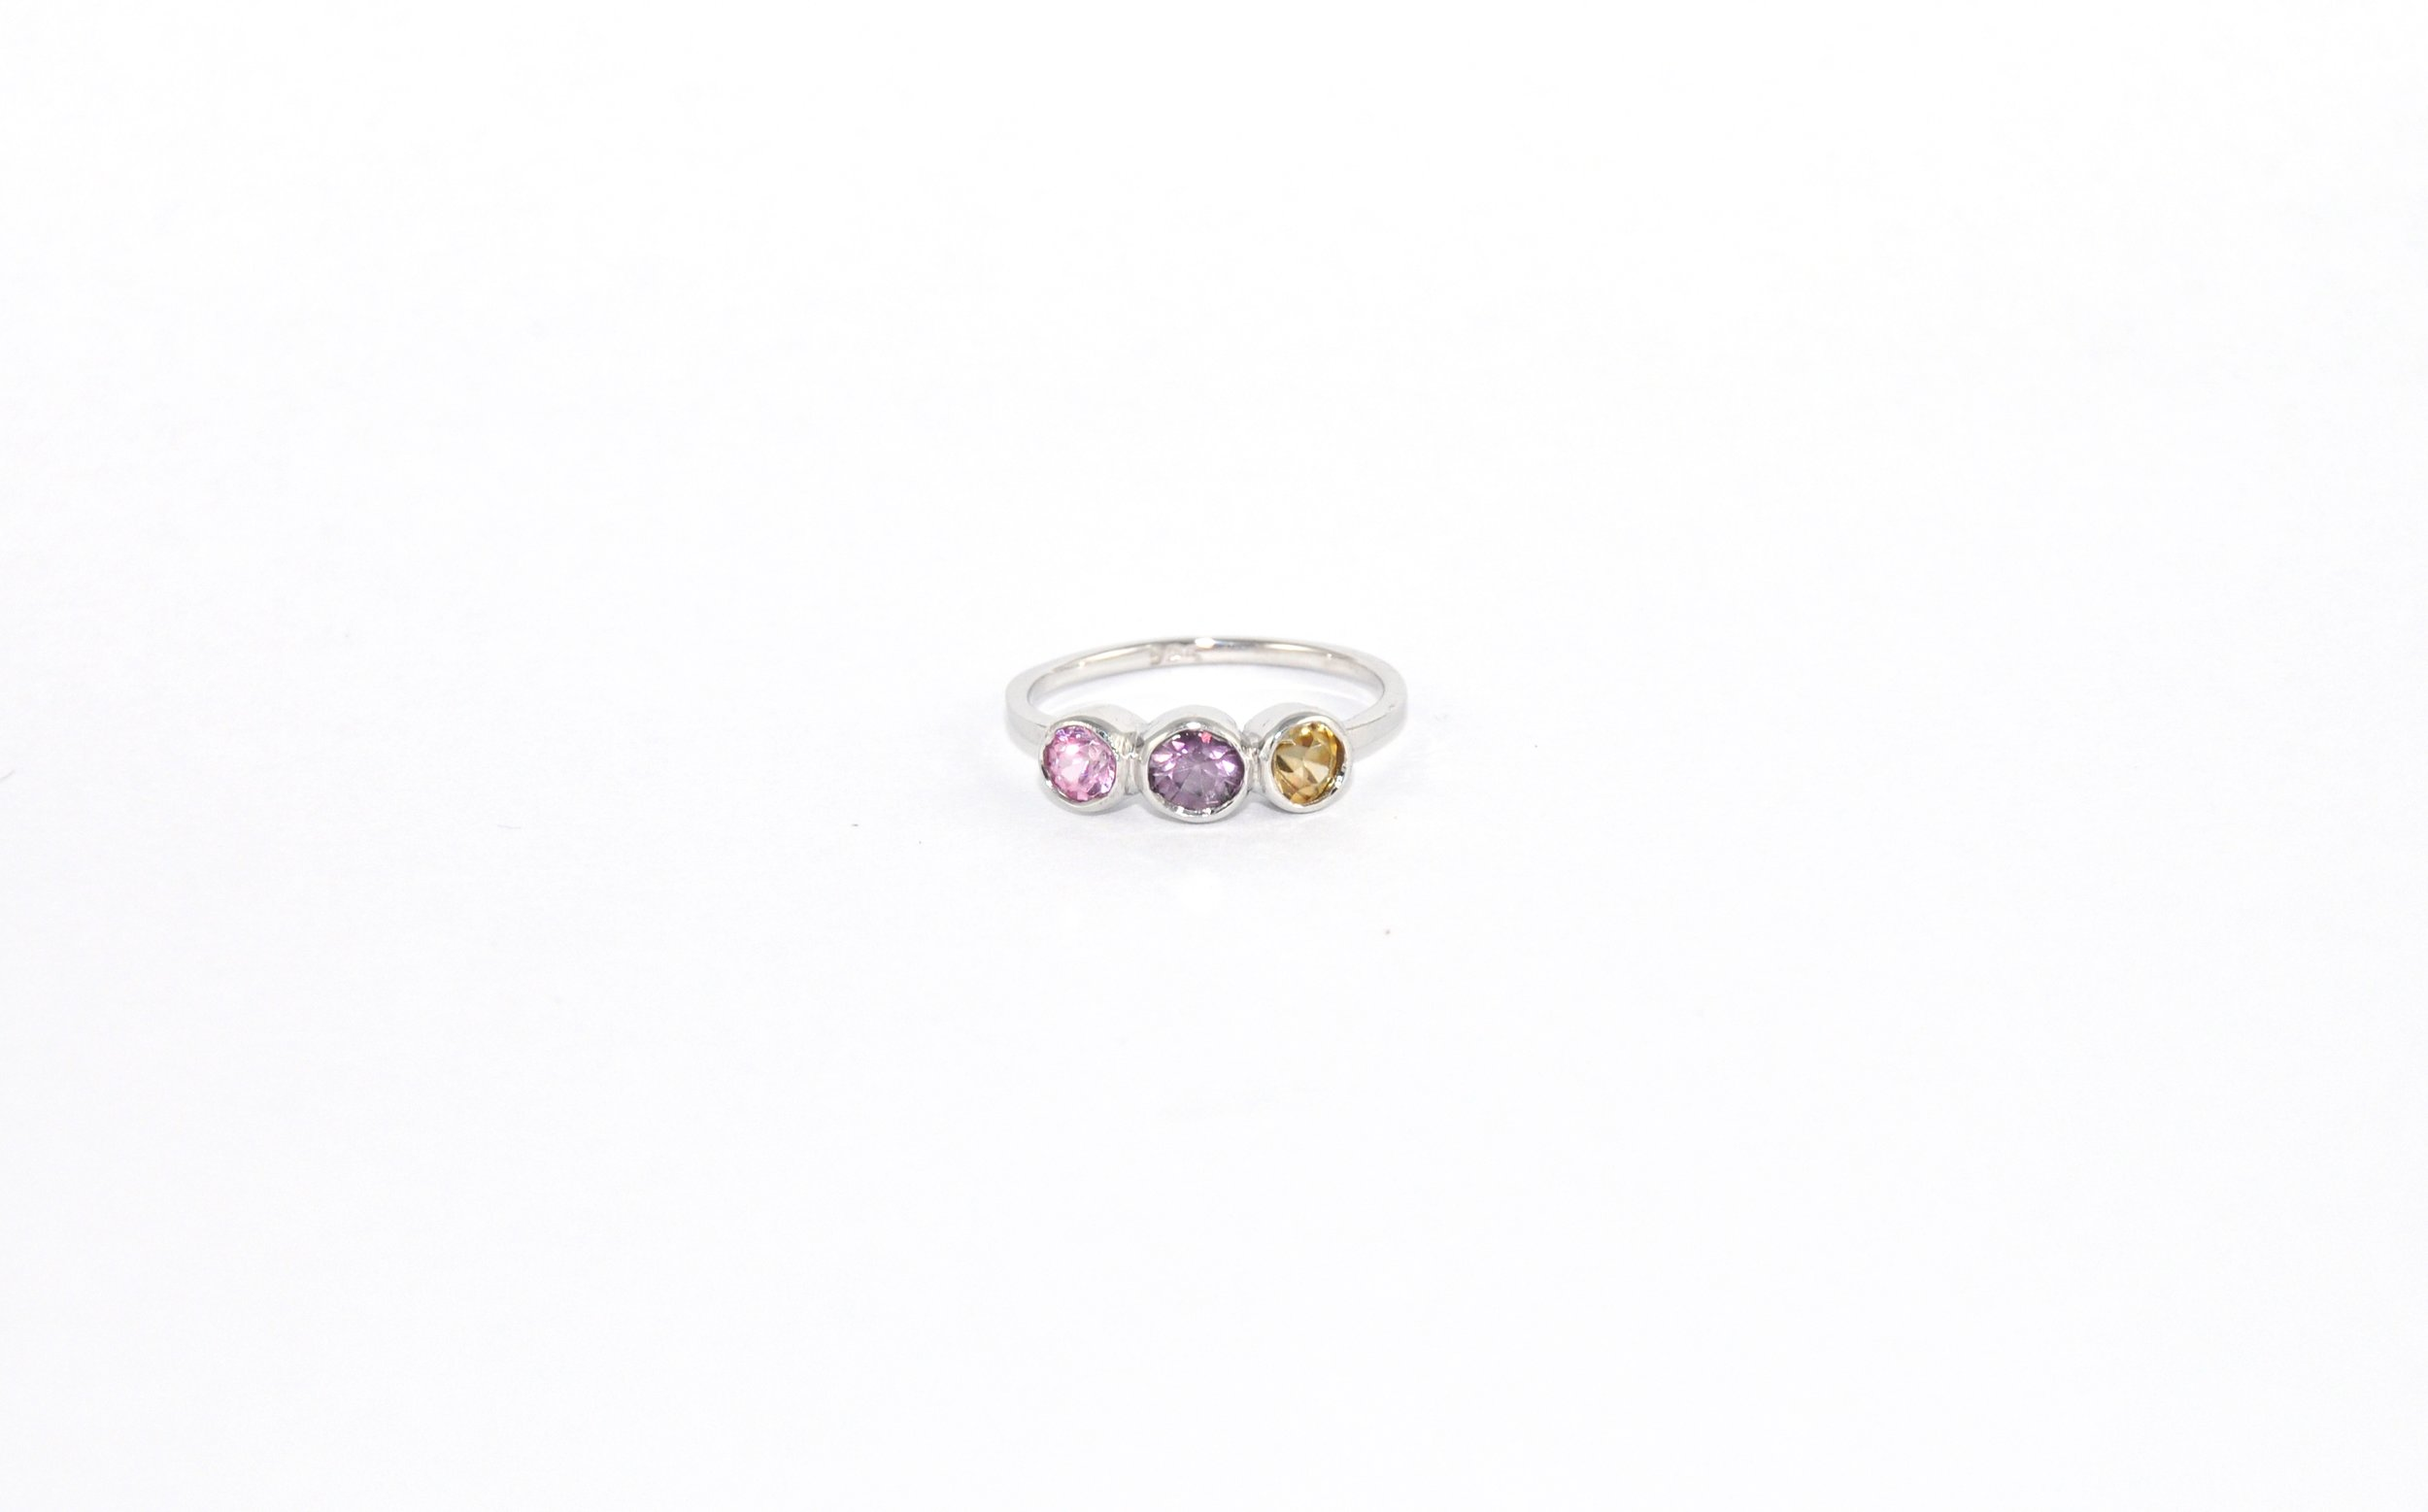 3 Stone Spinel Ring - Bezel Setting